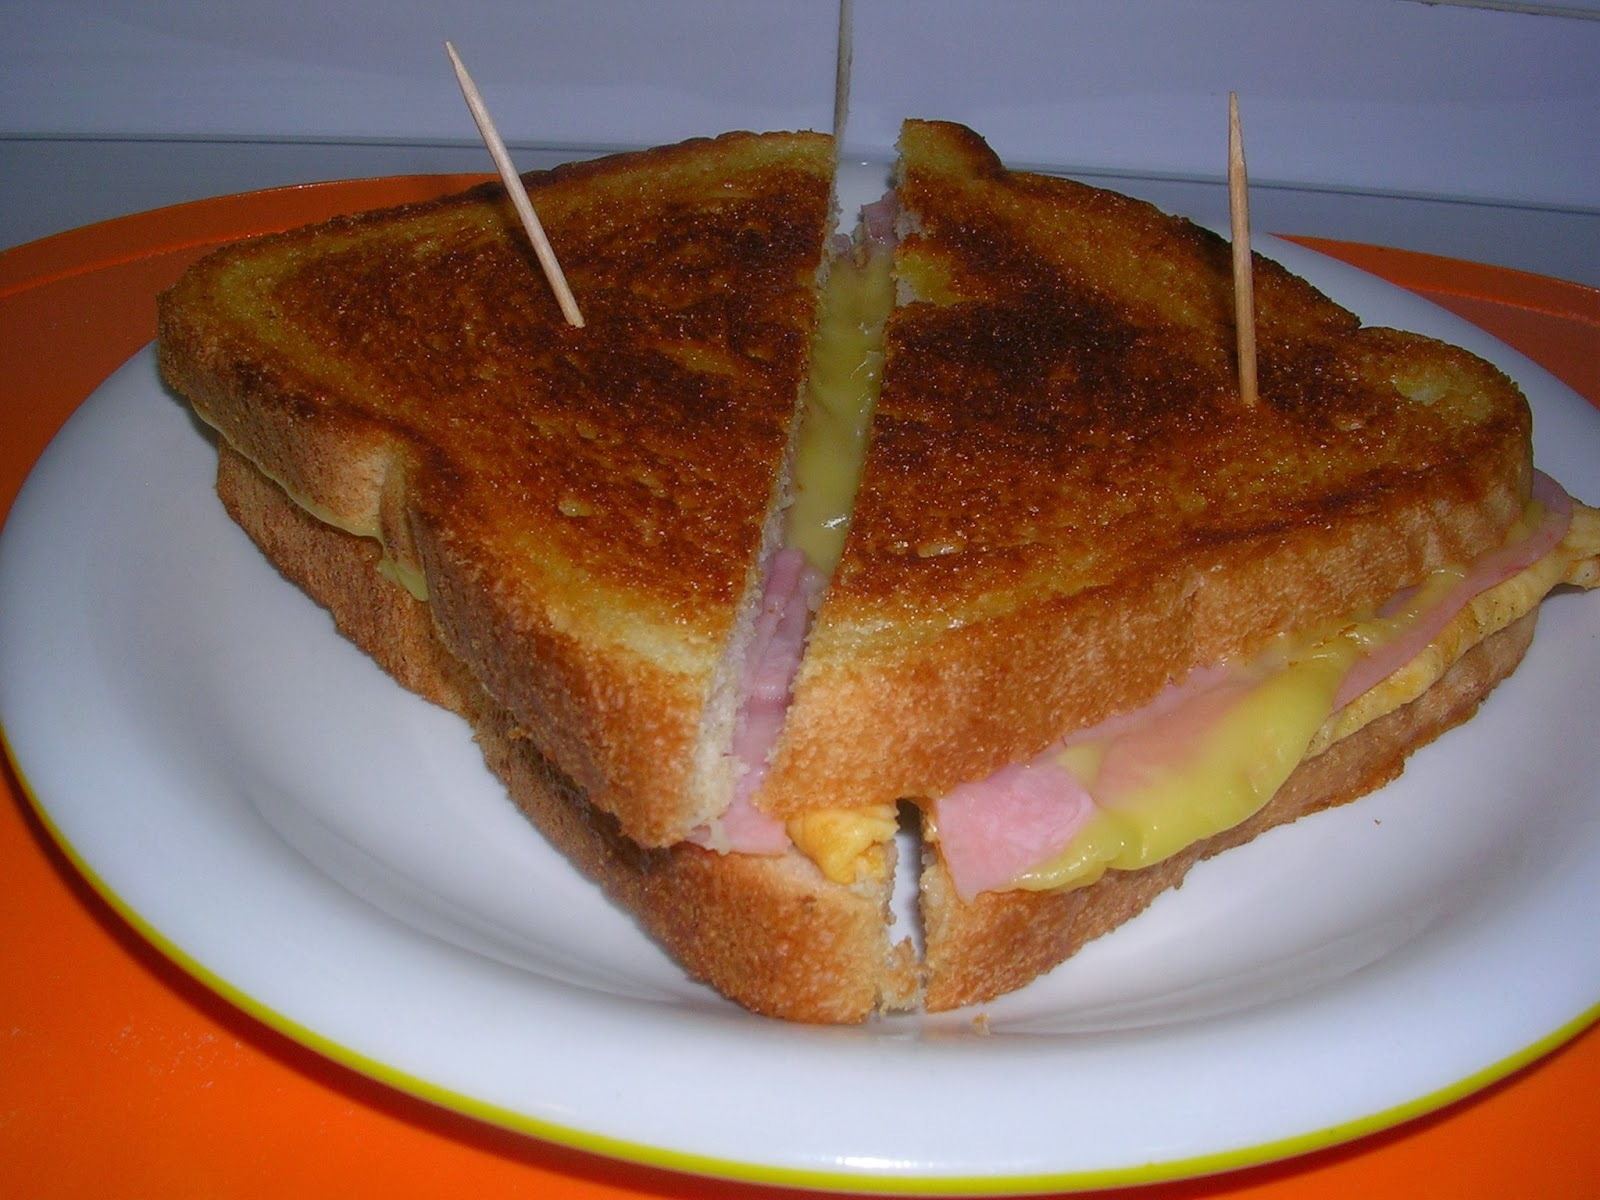 SANDWICH DE JAMON DE YORK, QUESO Y TORTILLA